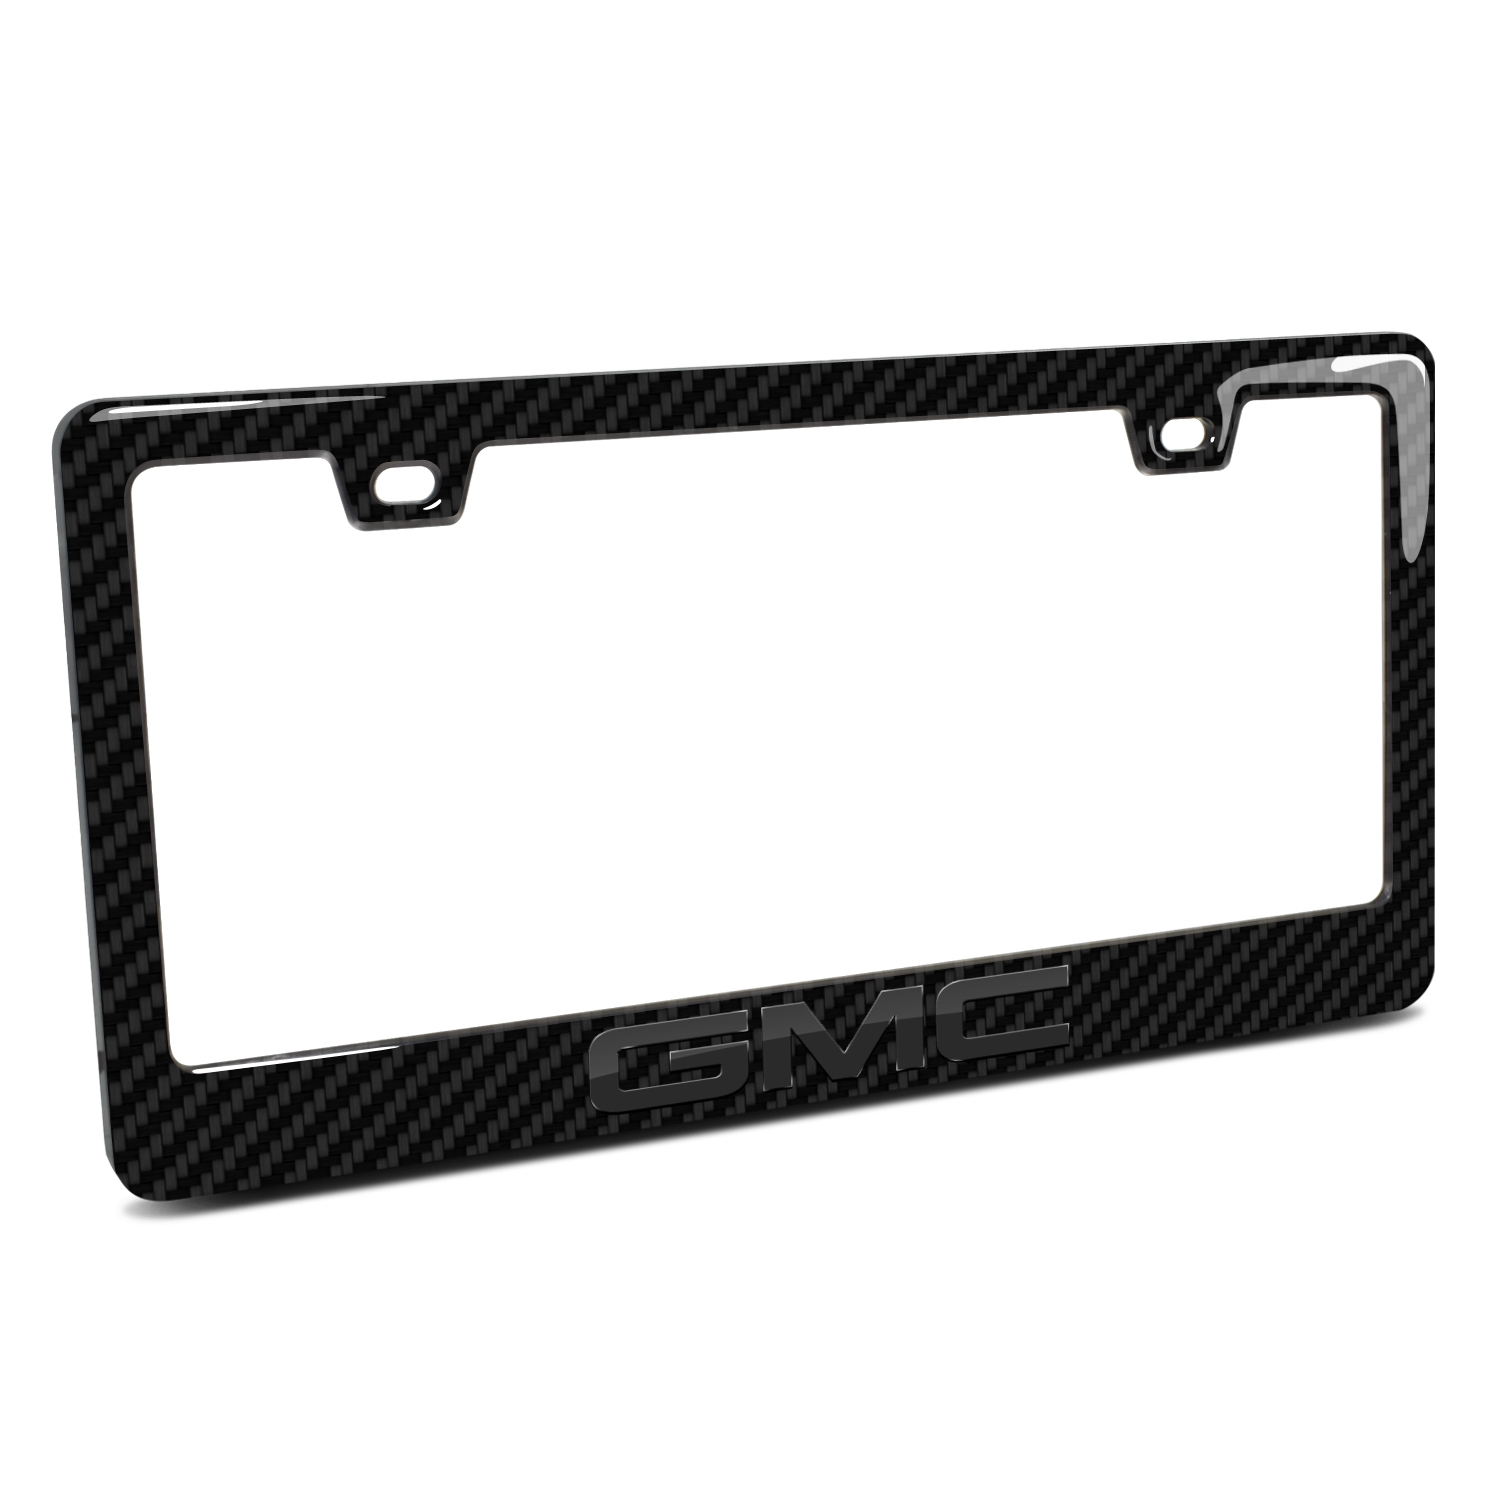 GMC in 3D Black on Black Real 3K Carbon Fiber Finish ABS Plastic License Plate Frame